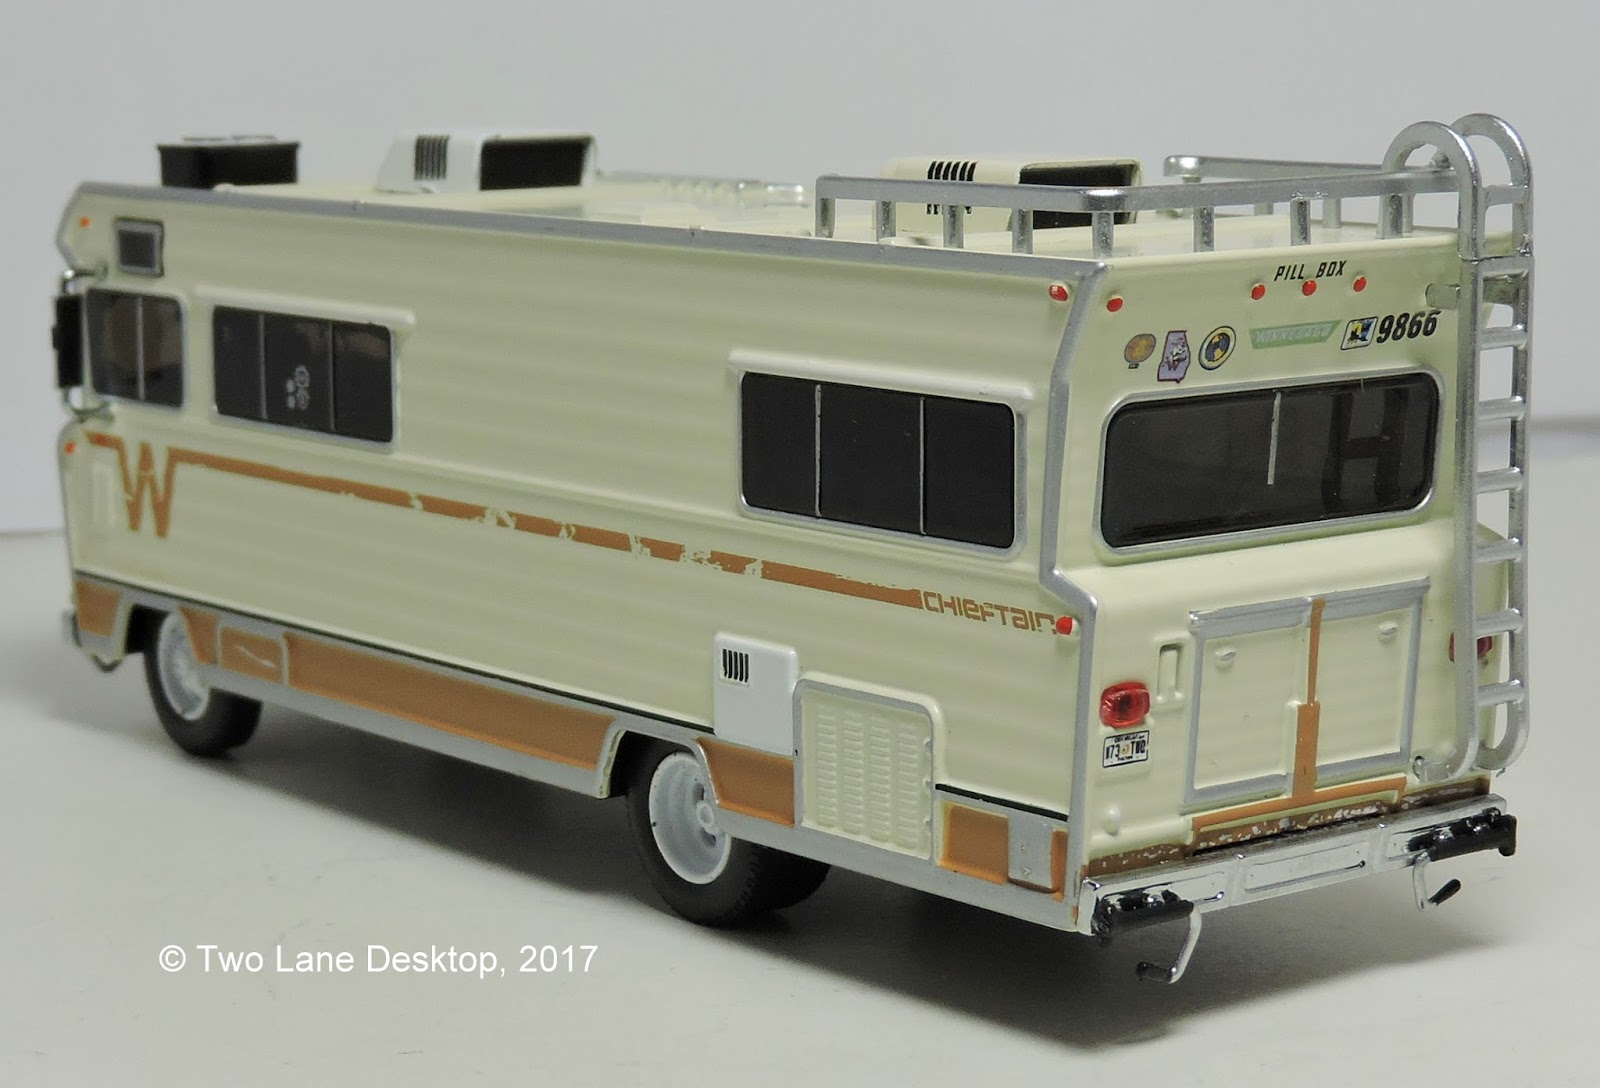 Greenlight 1973 Winnebago Chieftain | Two Lane Desktop